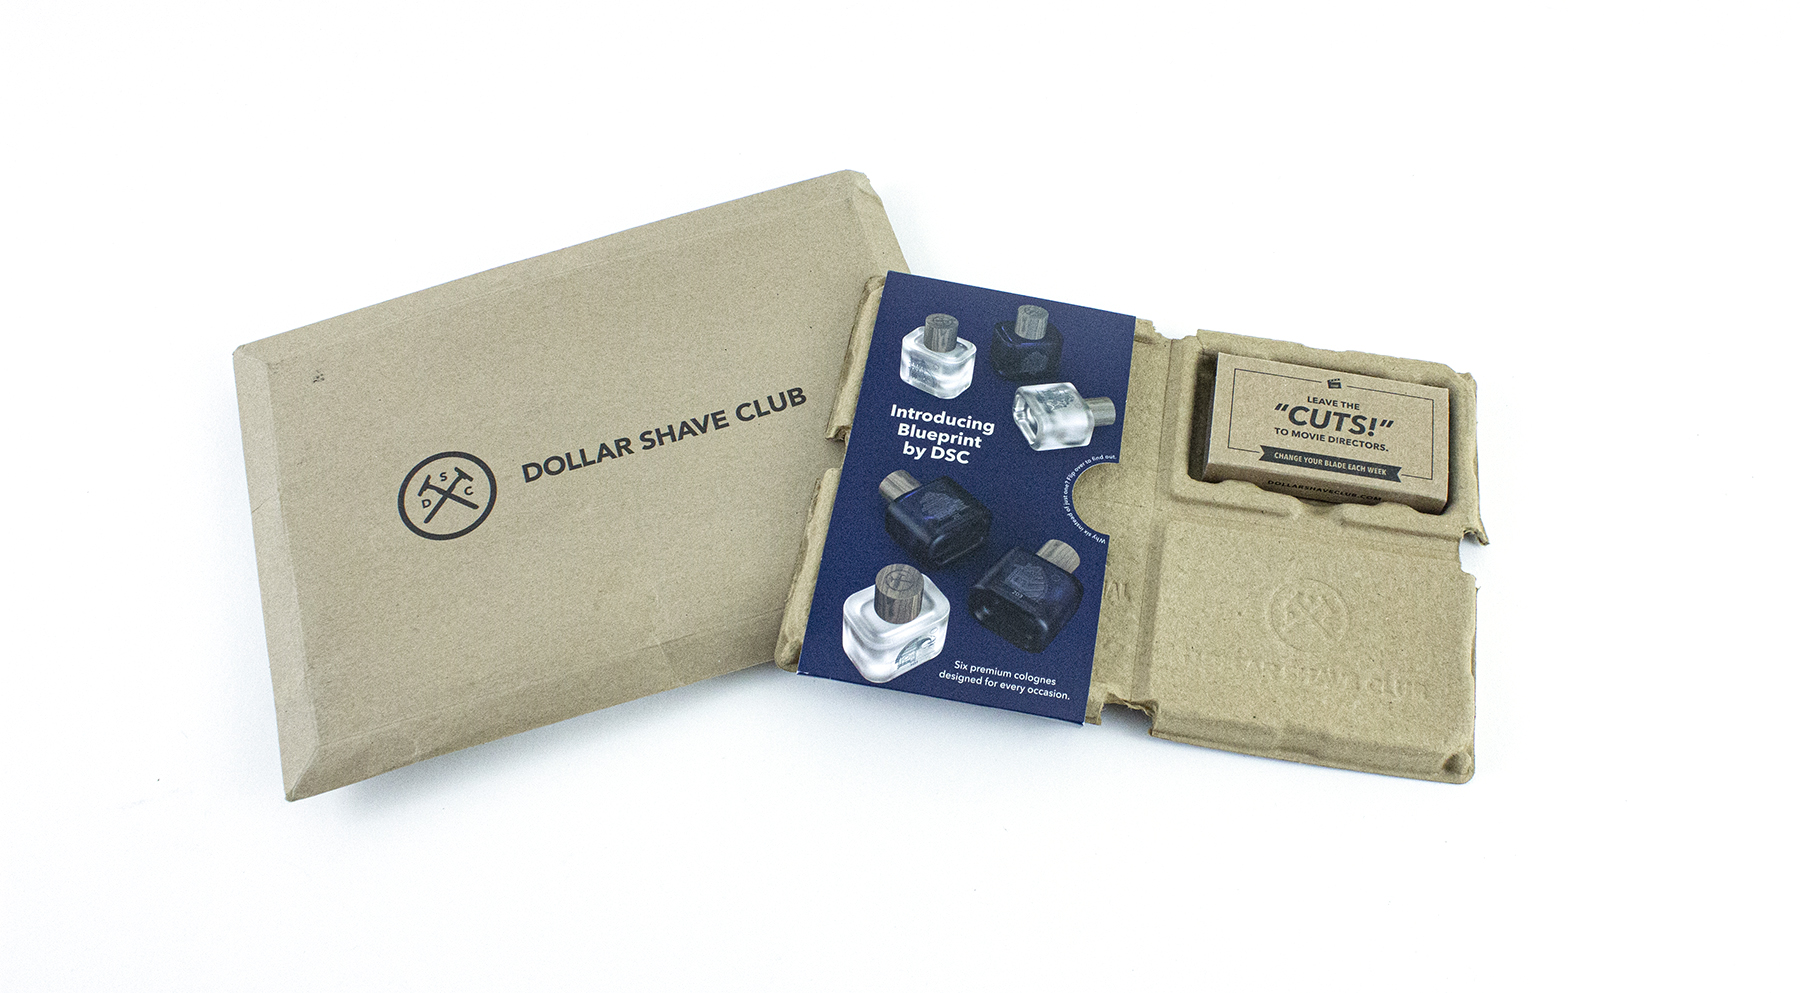 Dollar Shave Club product packaging prevents products from moving around during shipment.